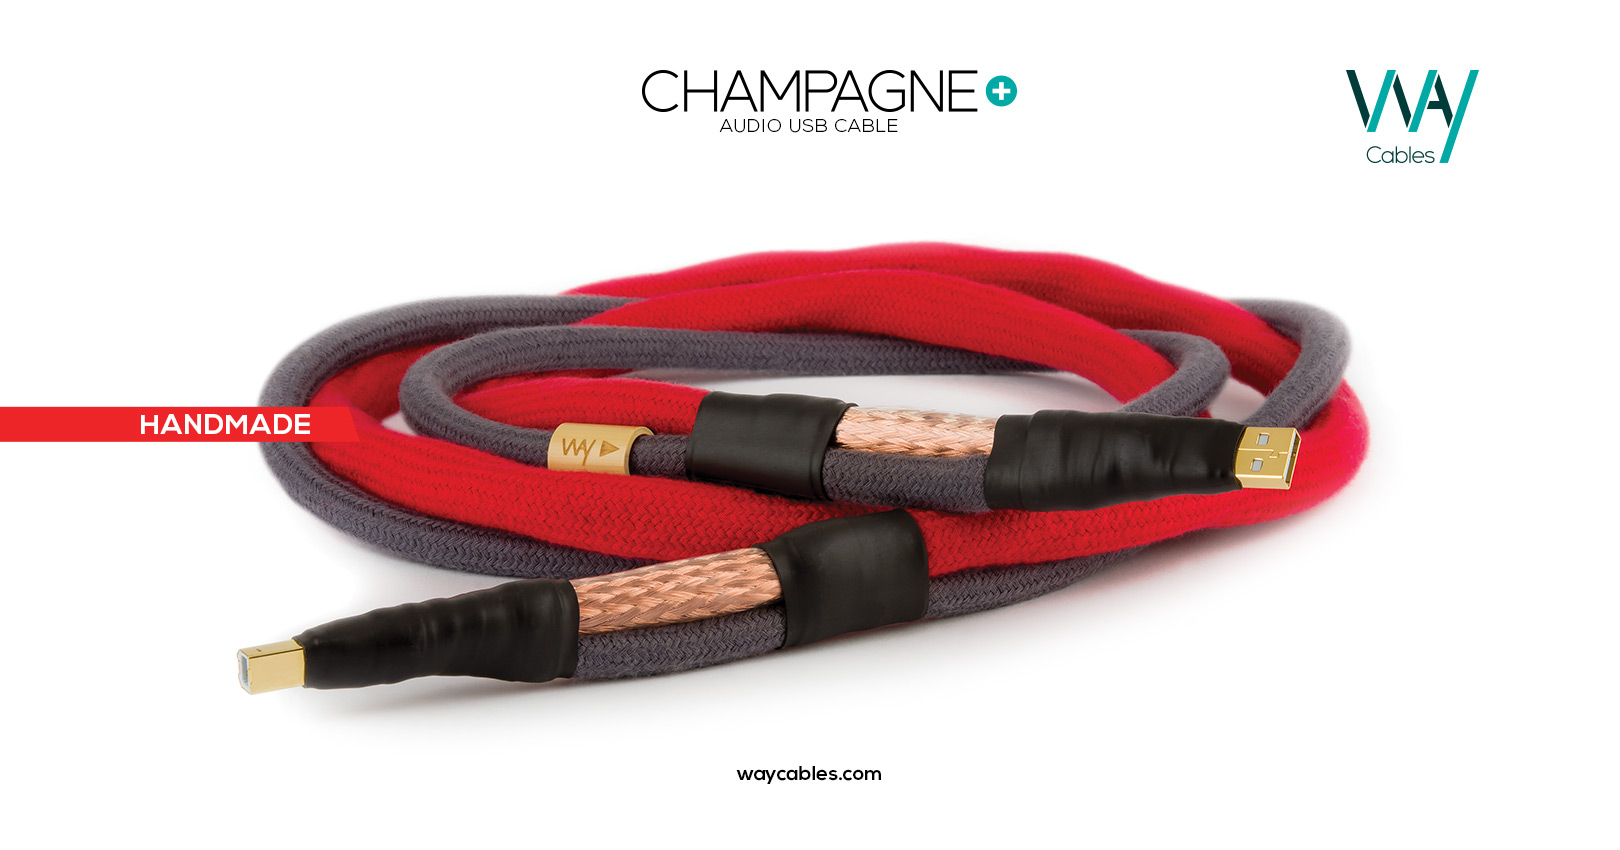 WayCables_DC_Champagne